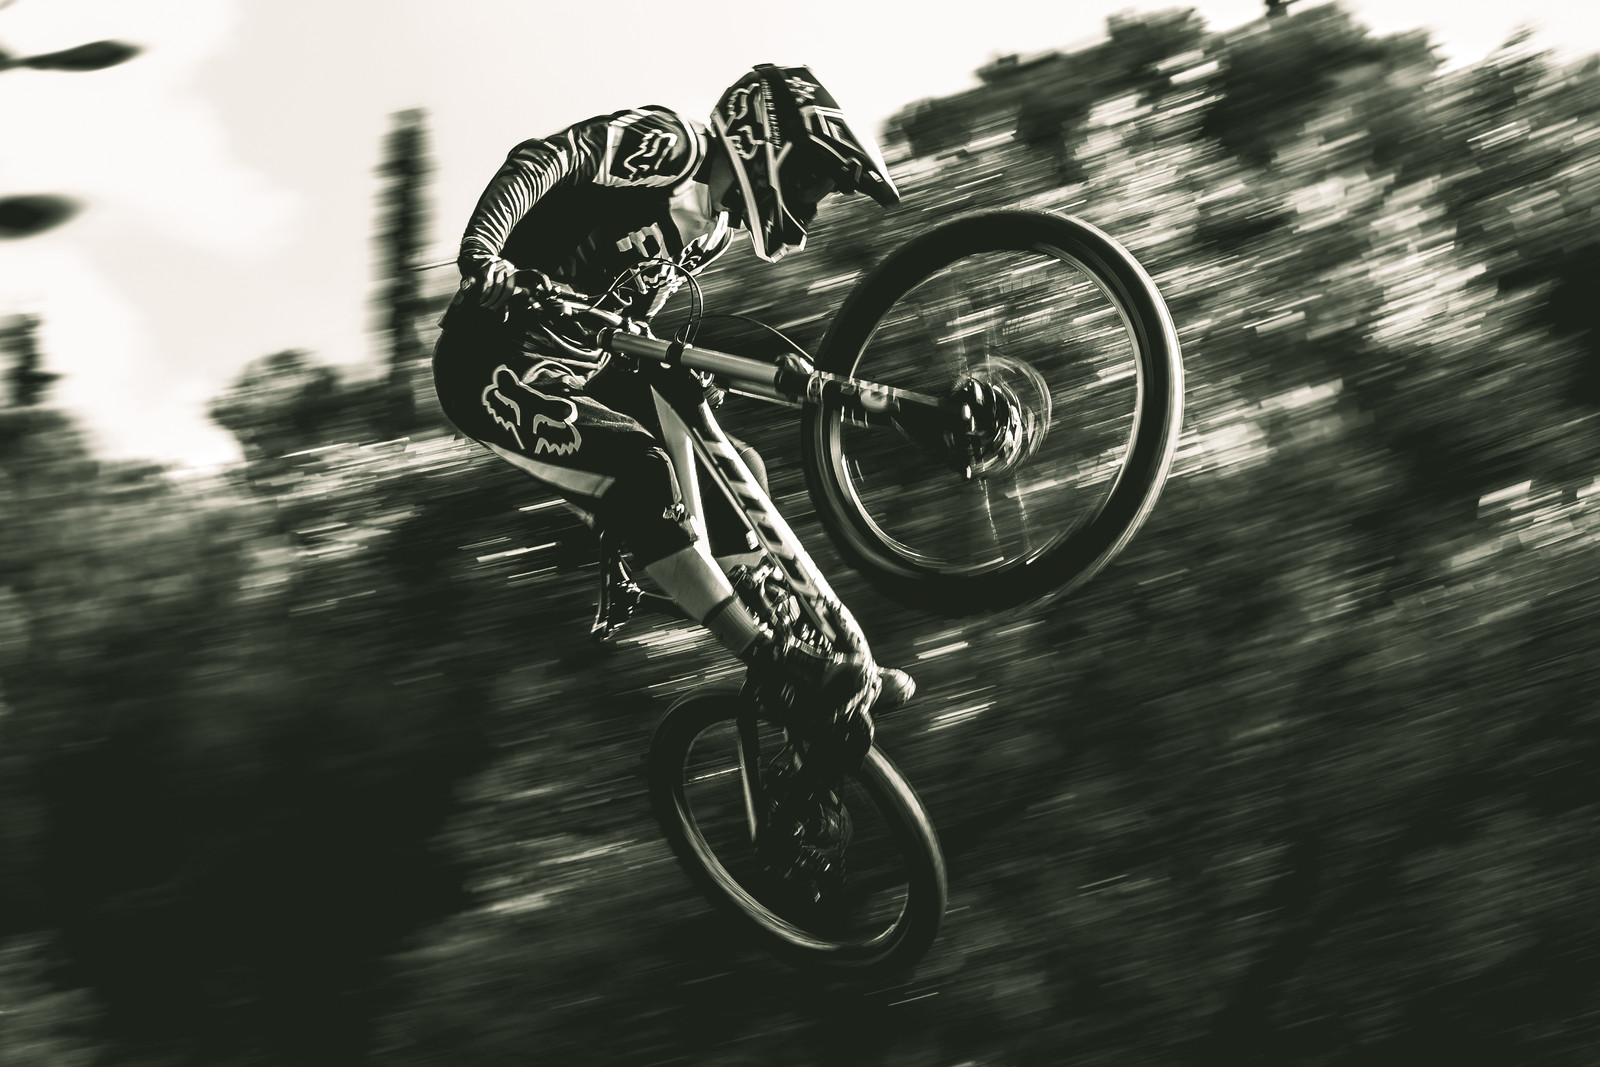 Speed is what defines YOU - pappoulakos - Mountain Biking Pictures - Vital MTB